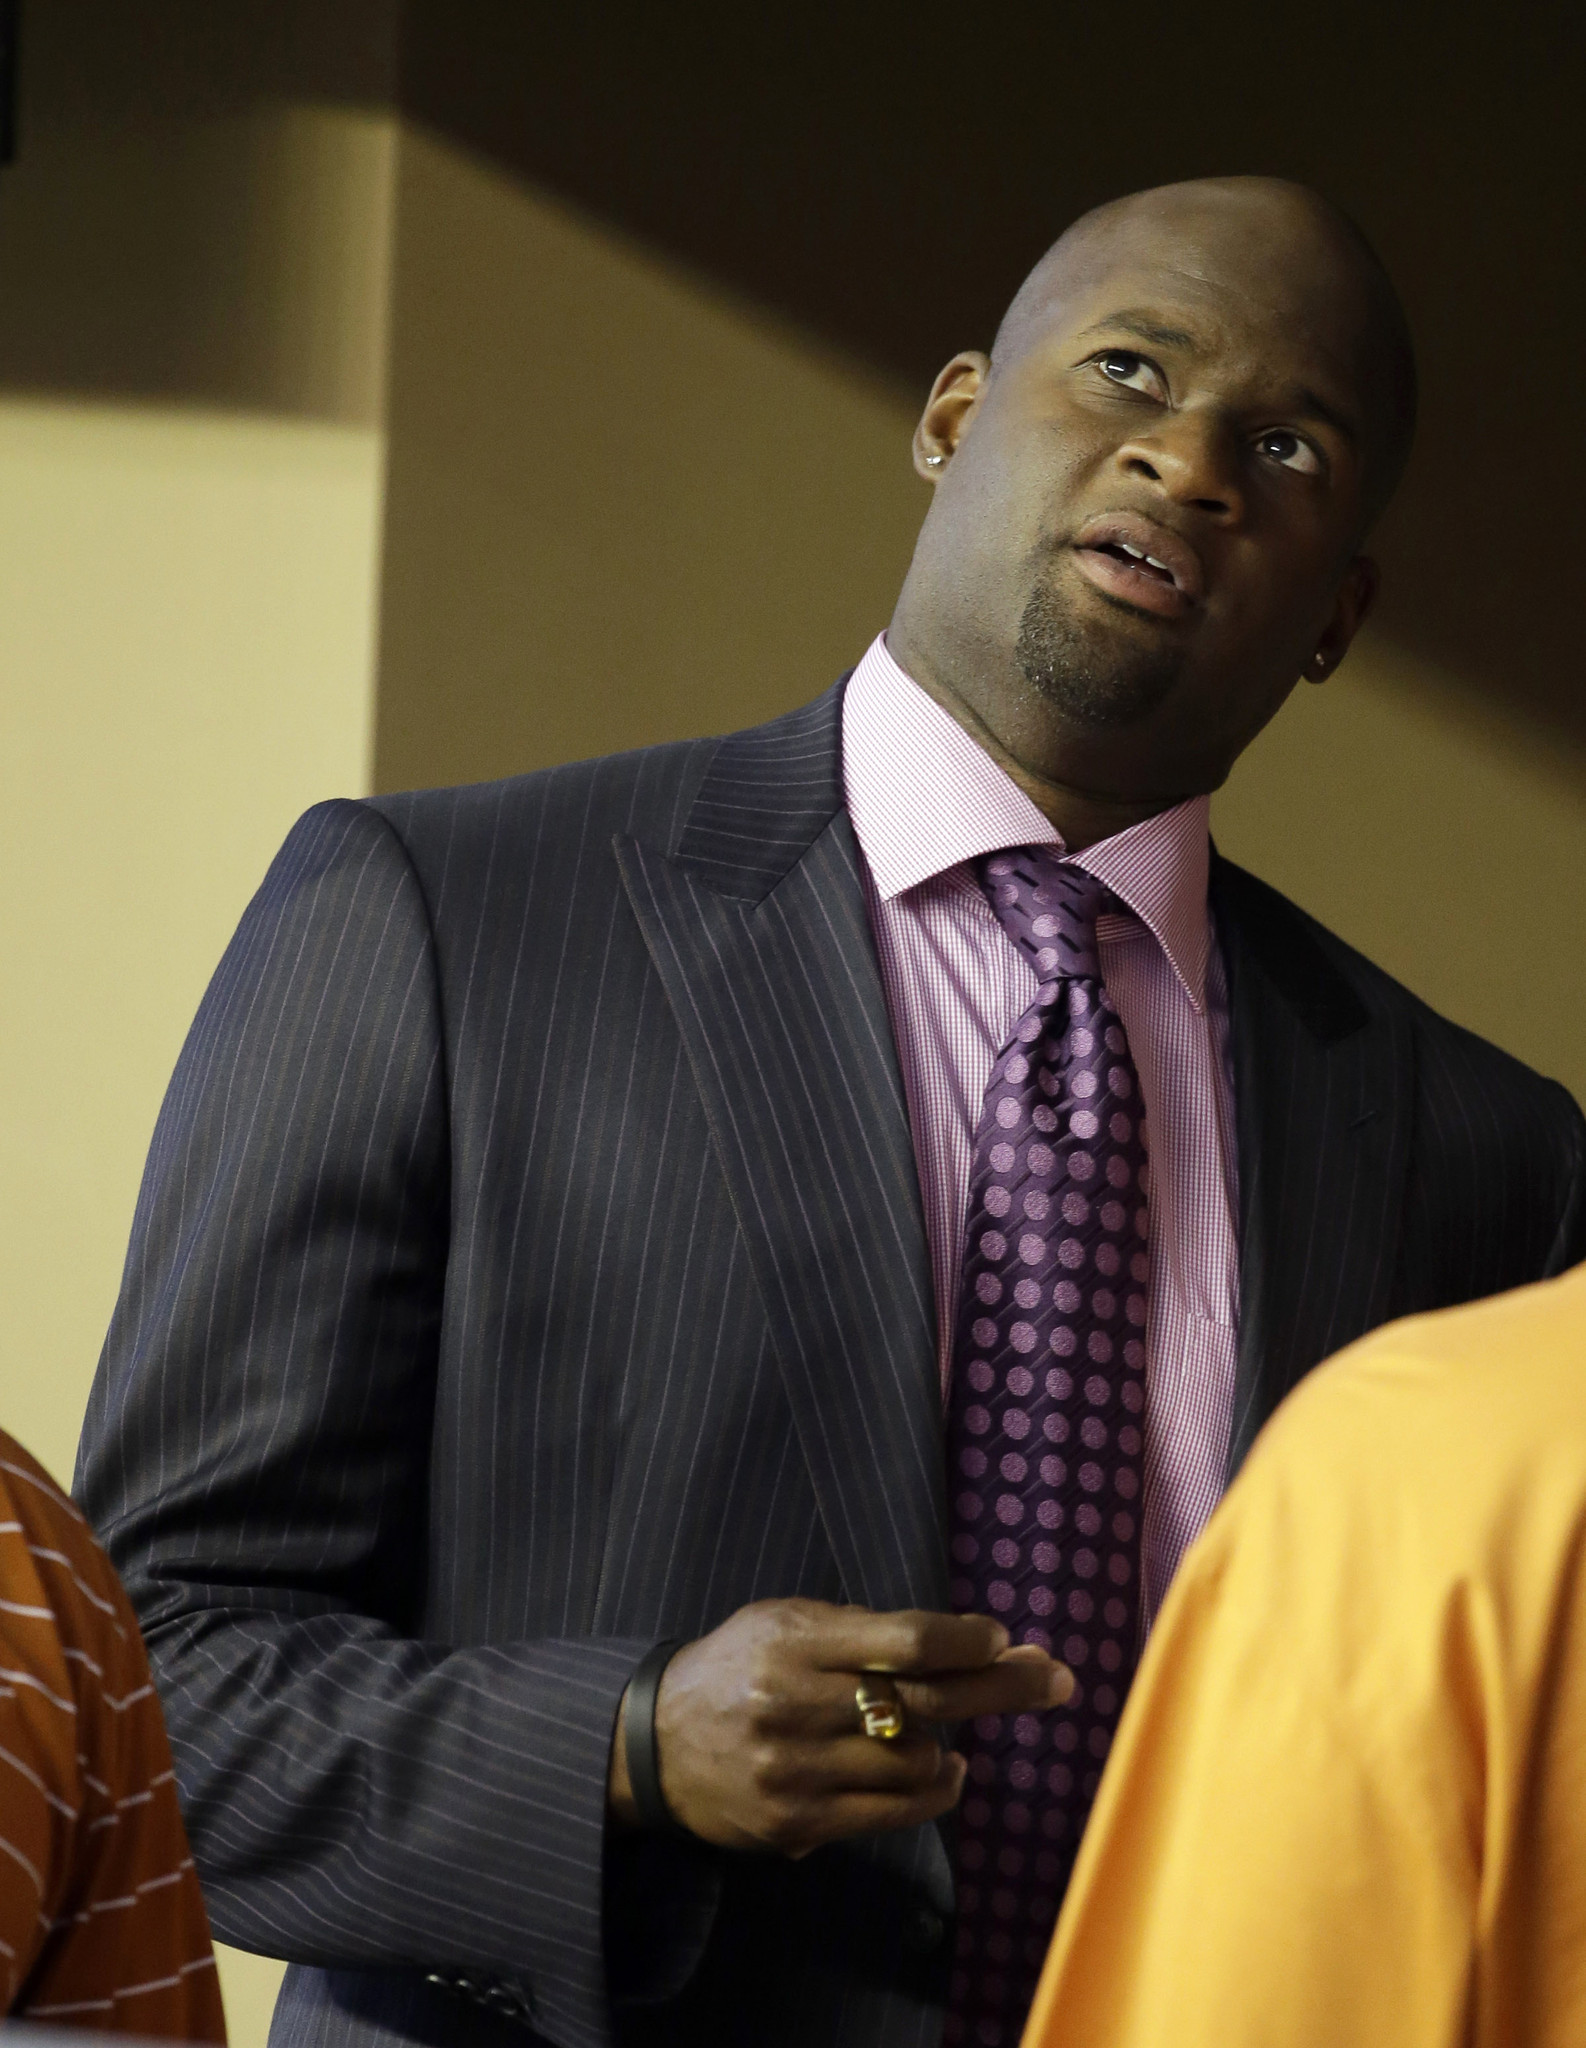 Ex Nfl Quarterback Vince Young Puts Texas Home Up For Sale